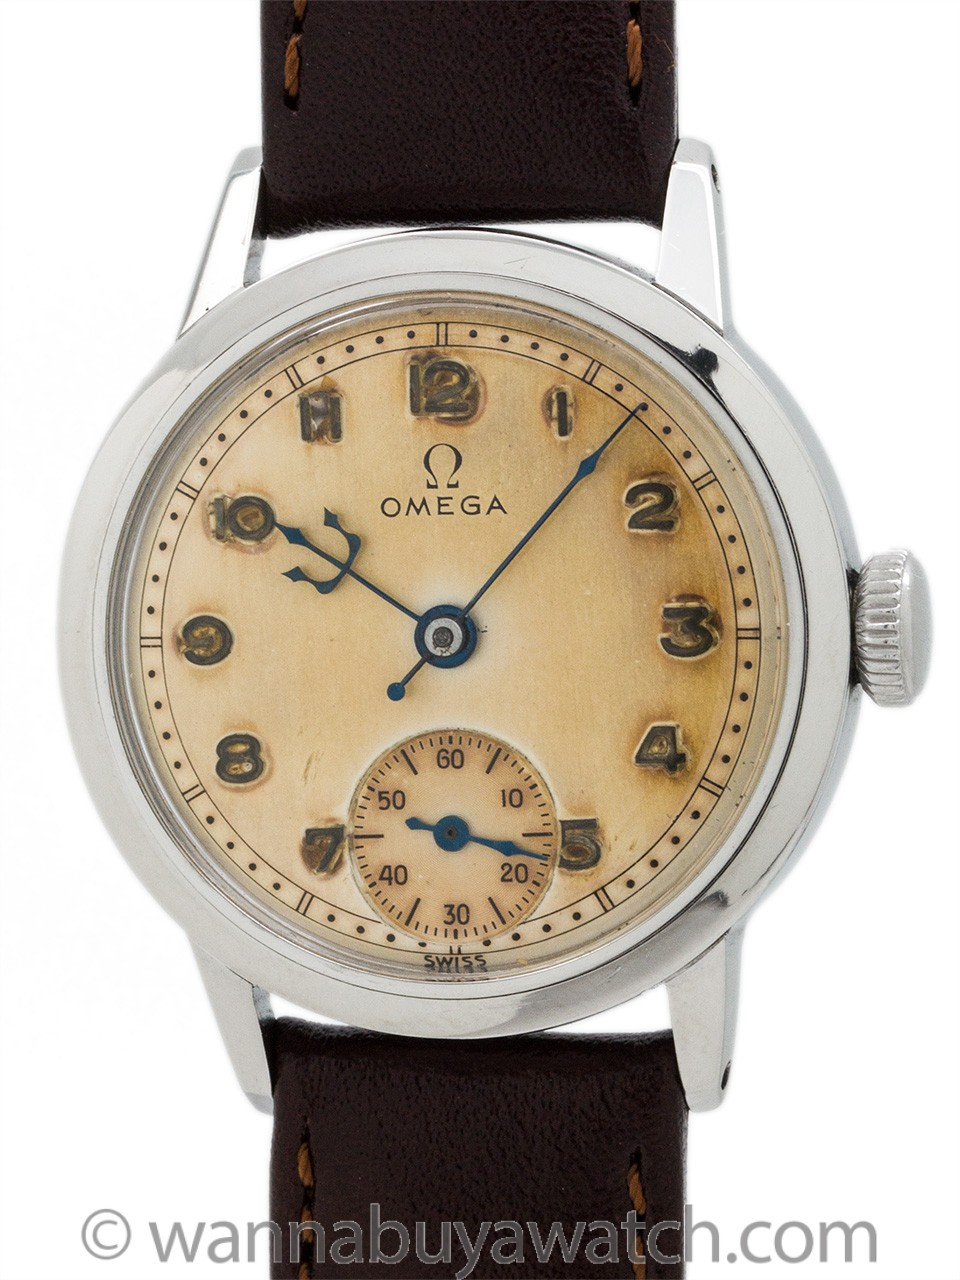 Vintage Omega SS manual wind model circa 1940's